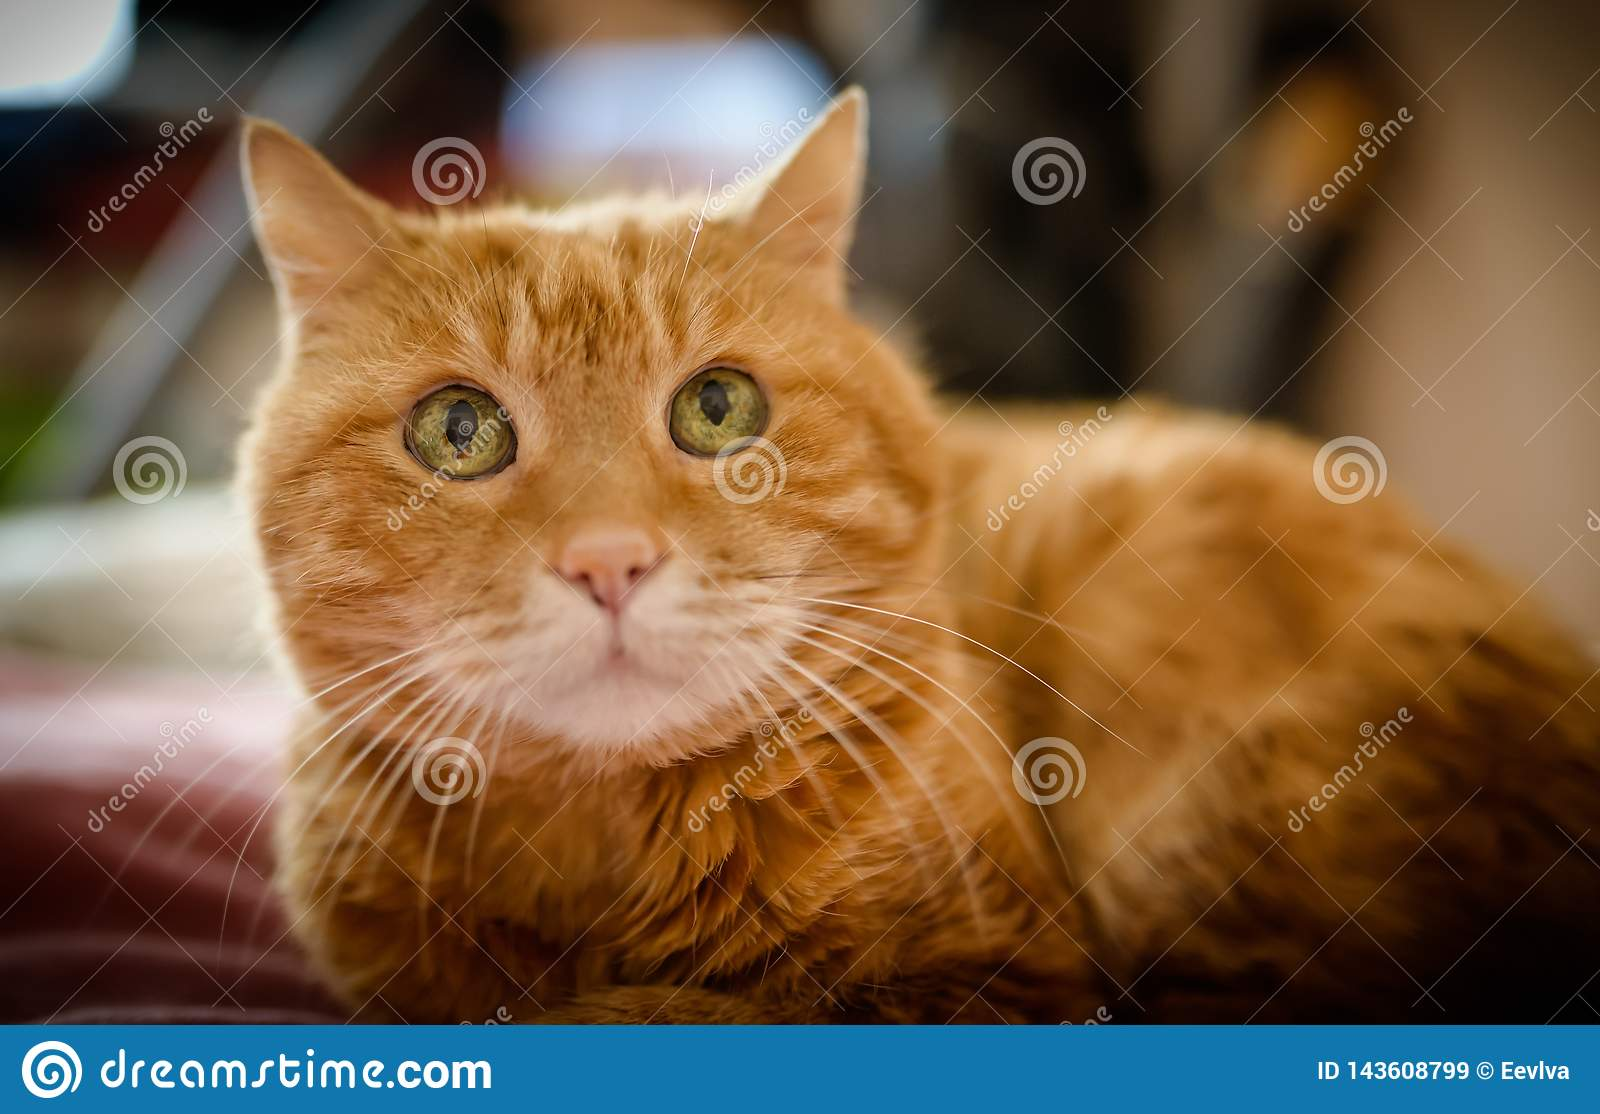 Adorable red cat.